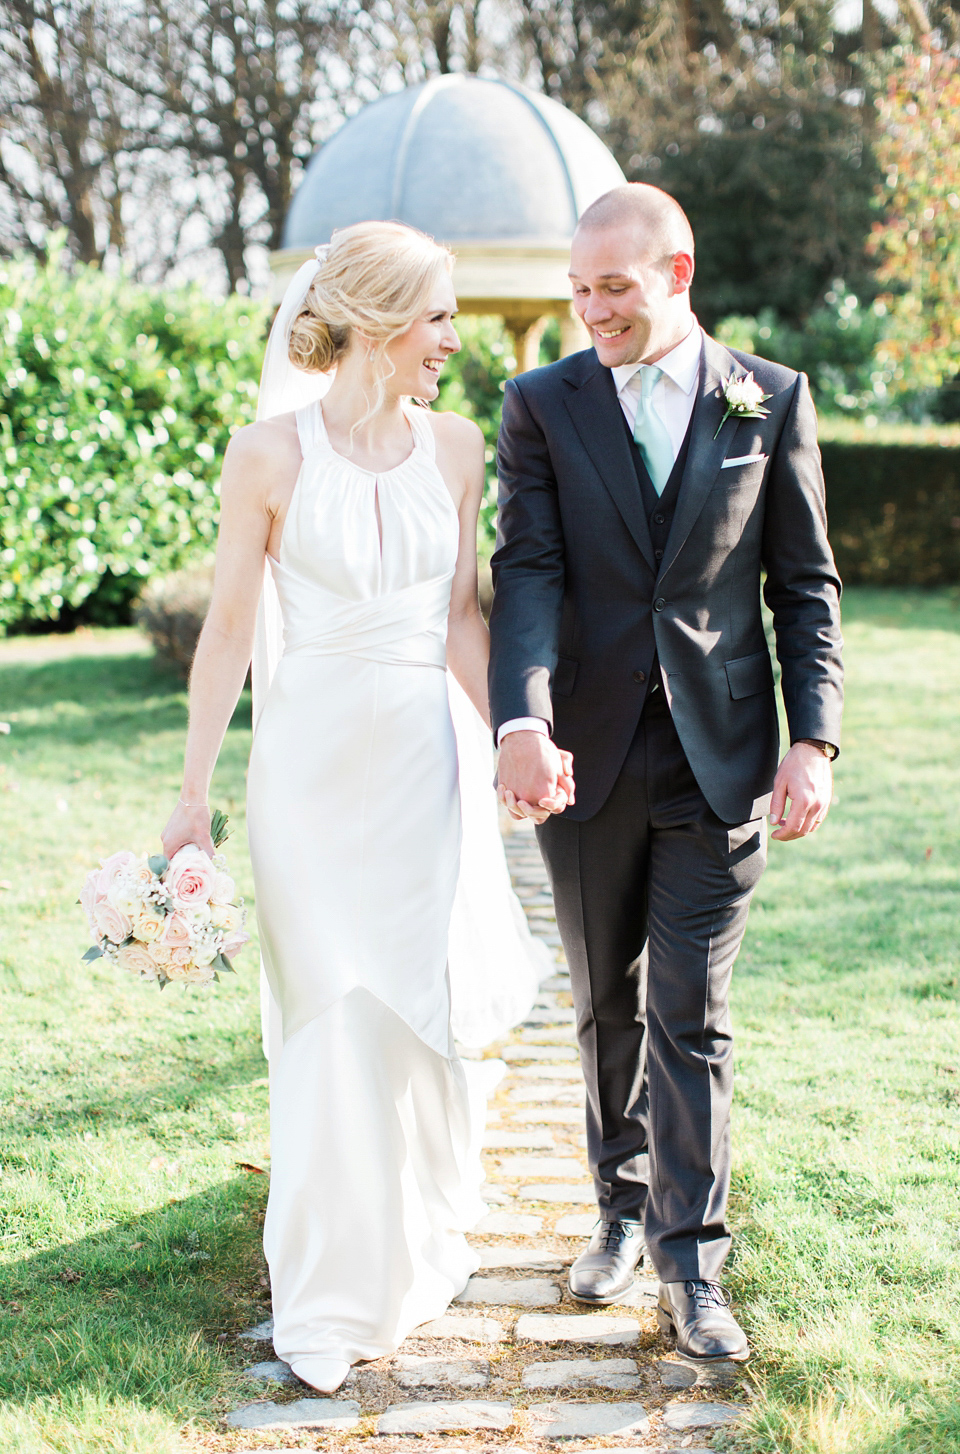 Amanda Wakeley Elegance And Pastel Blooms For A Springtime Country House Wedding (Weddings )